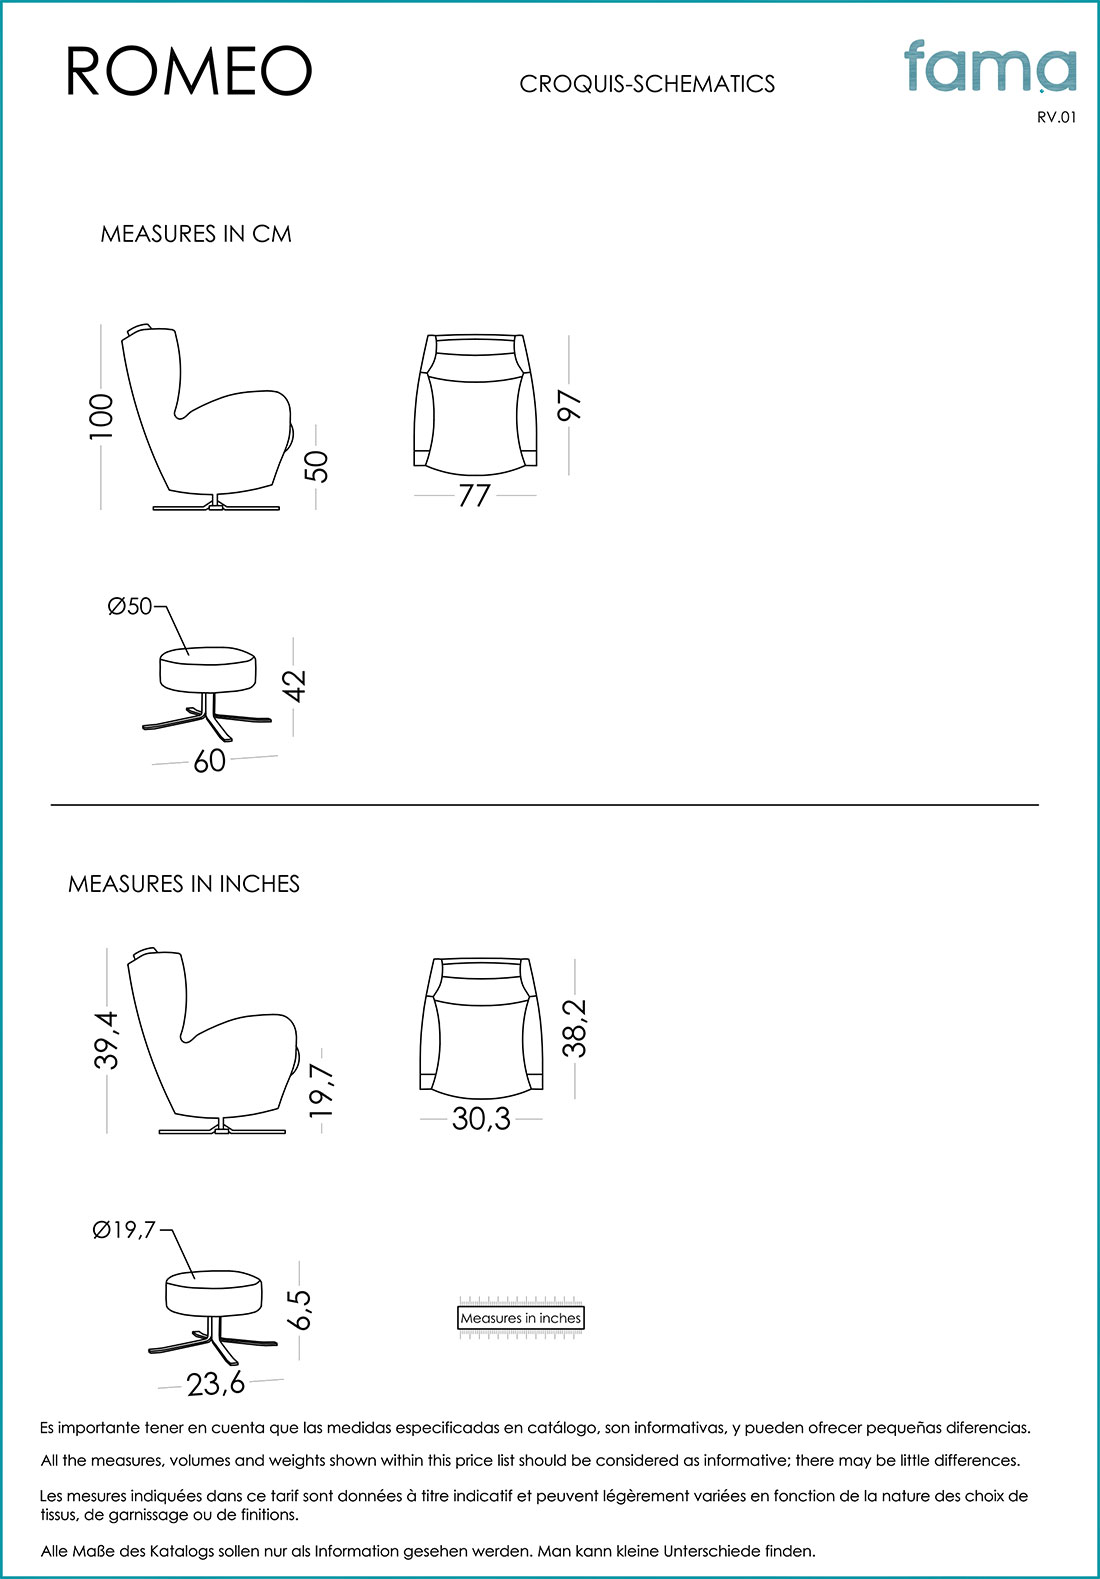 chaise-contemporain-famaliving-montreal-romeo-specification-sheet